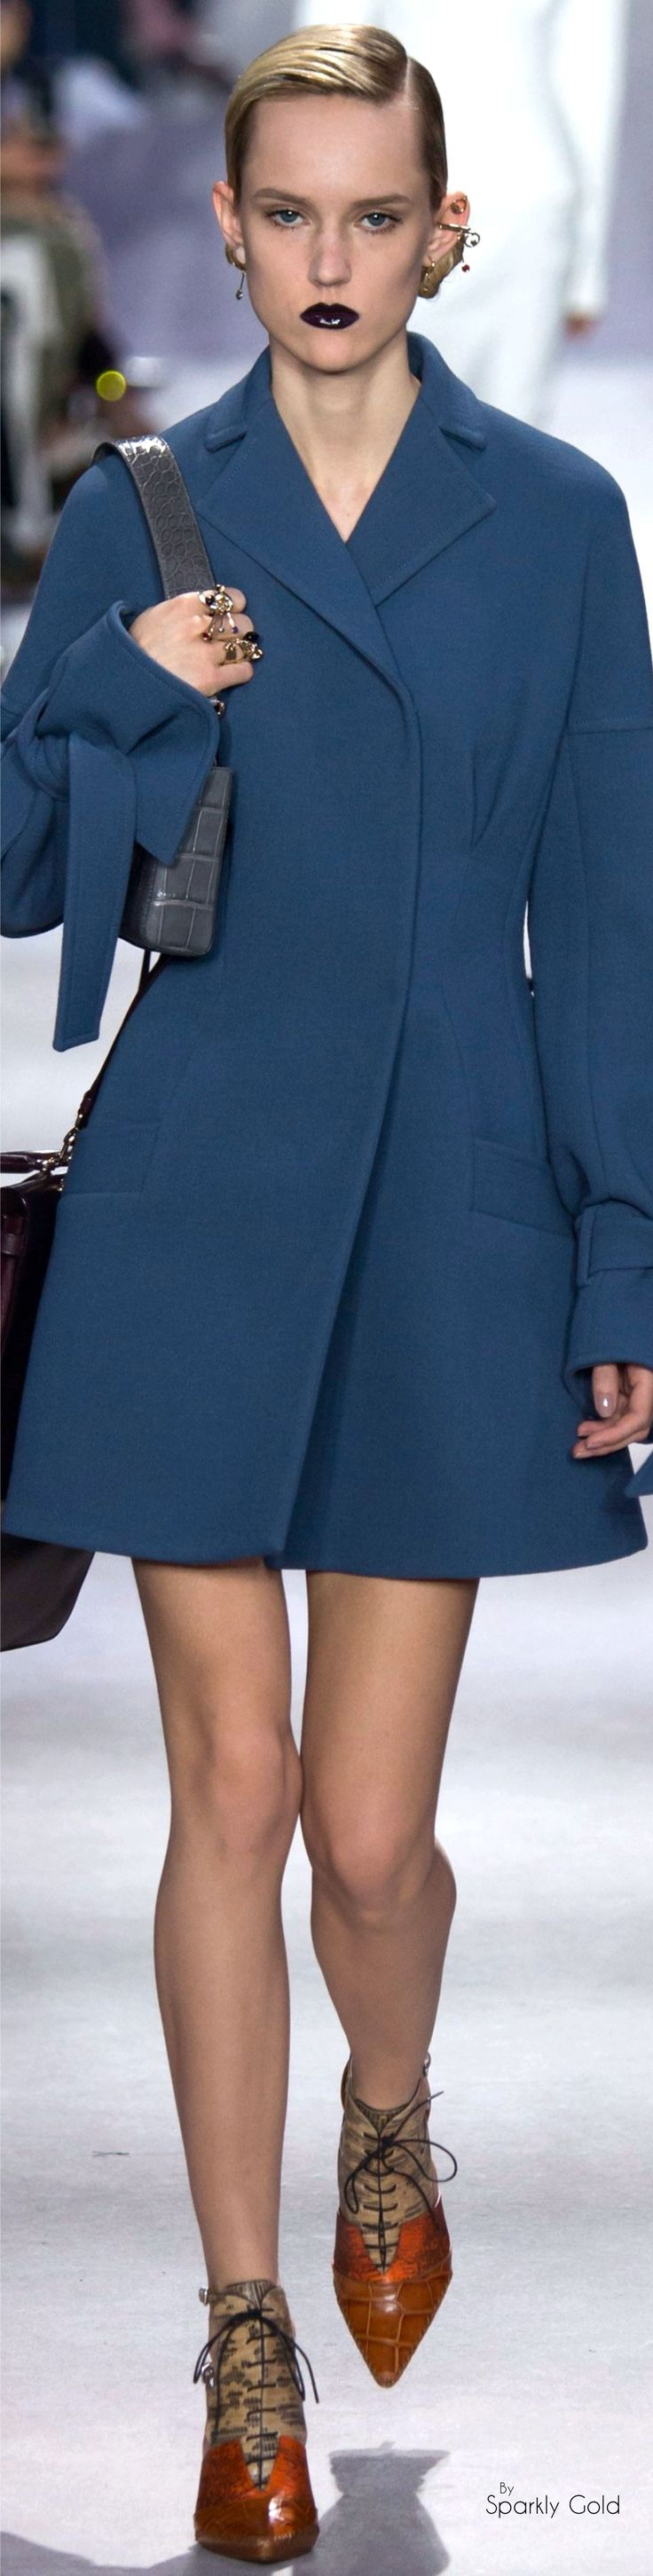 Christian Dior Fall 2016 RTW blue coat women fashion outfit clothing style apparel @roressclothes closet ideas